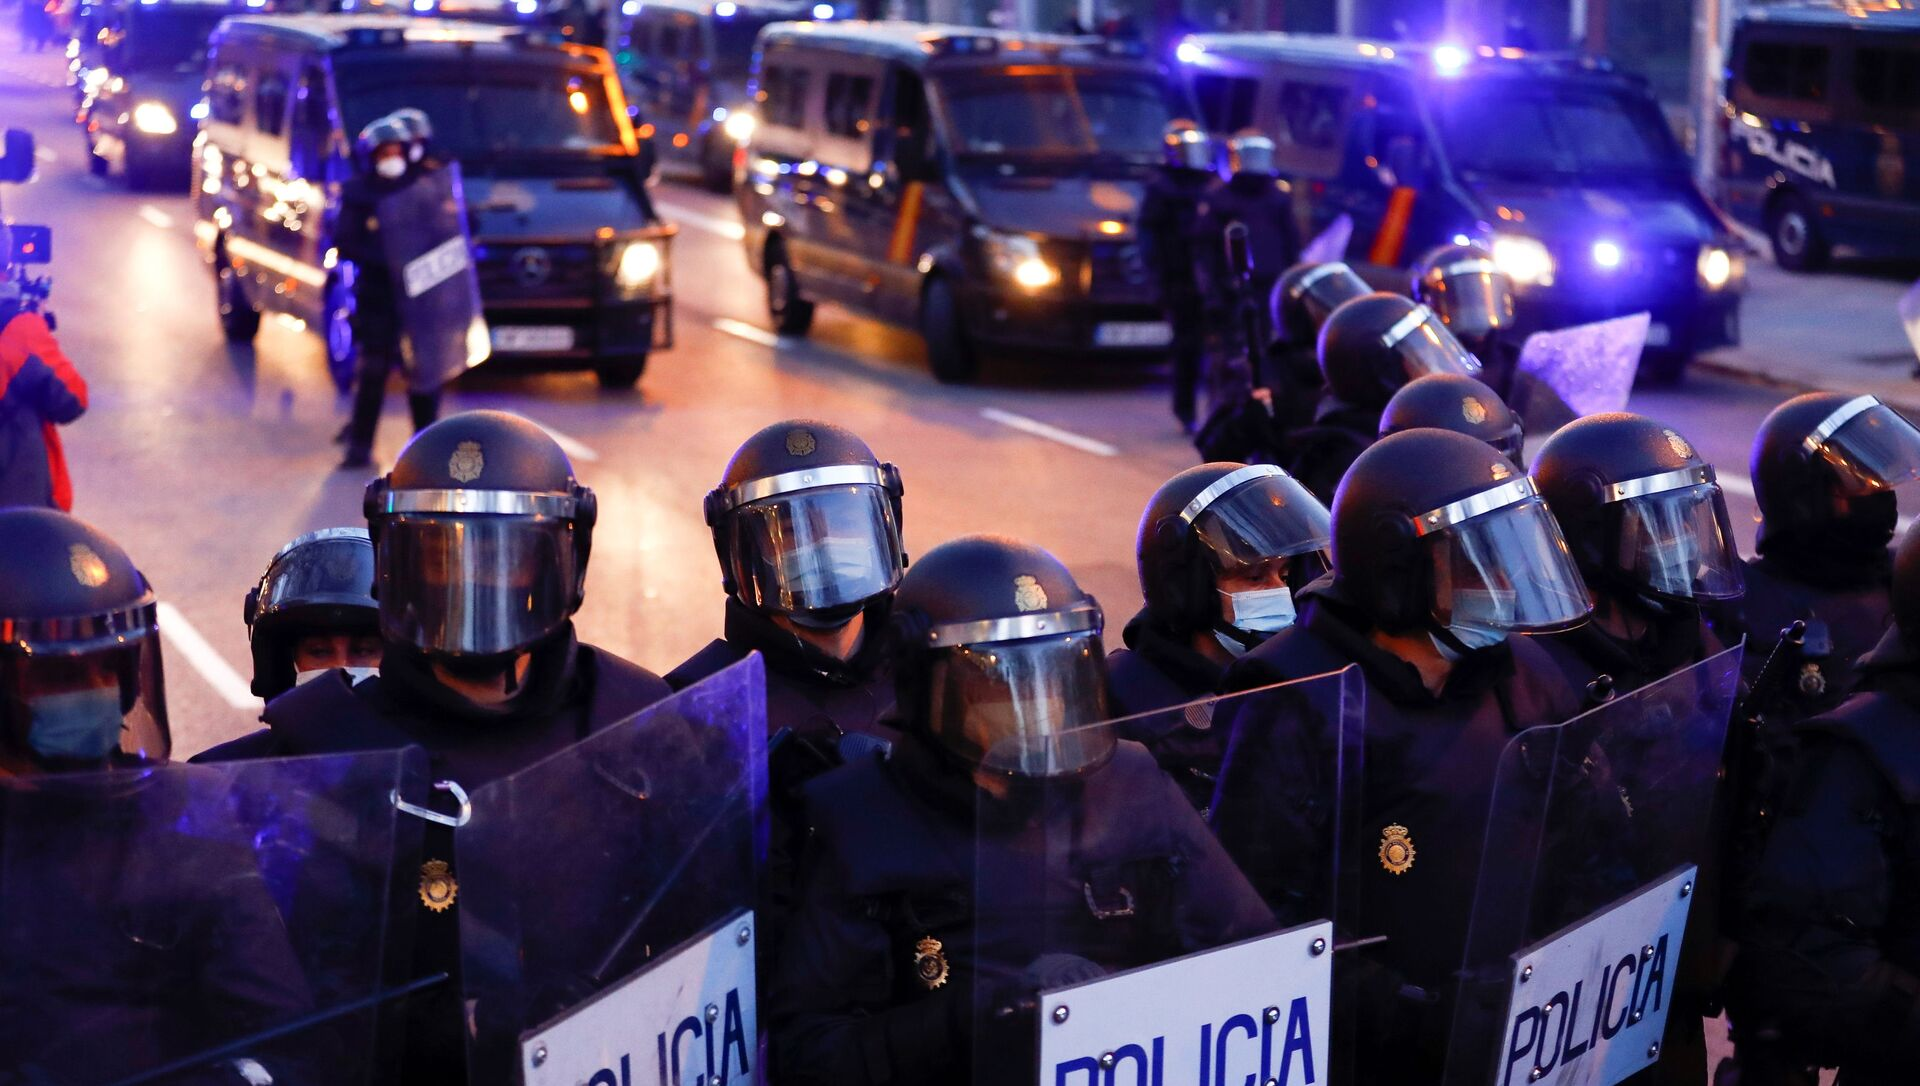 Police officers stand in formation during a protest in support of Catalan rap singer Pablo Hasel in Madrid, Spain, March 20, 2021. - Sputnik Italia, 1920, 21.03.2021